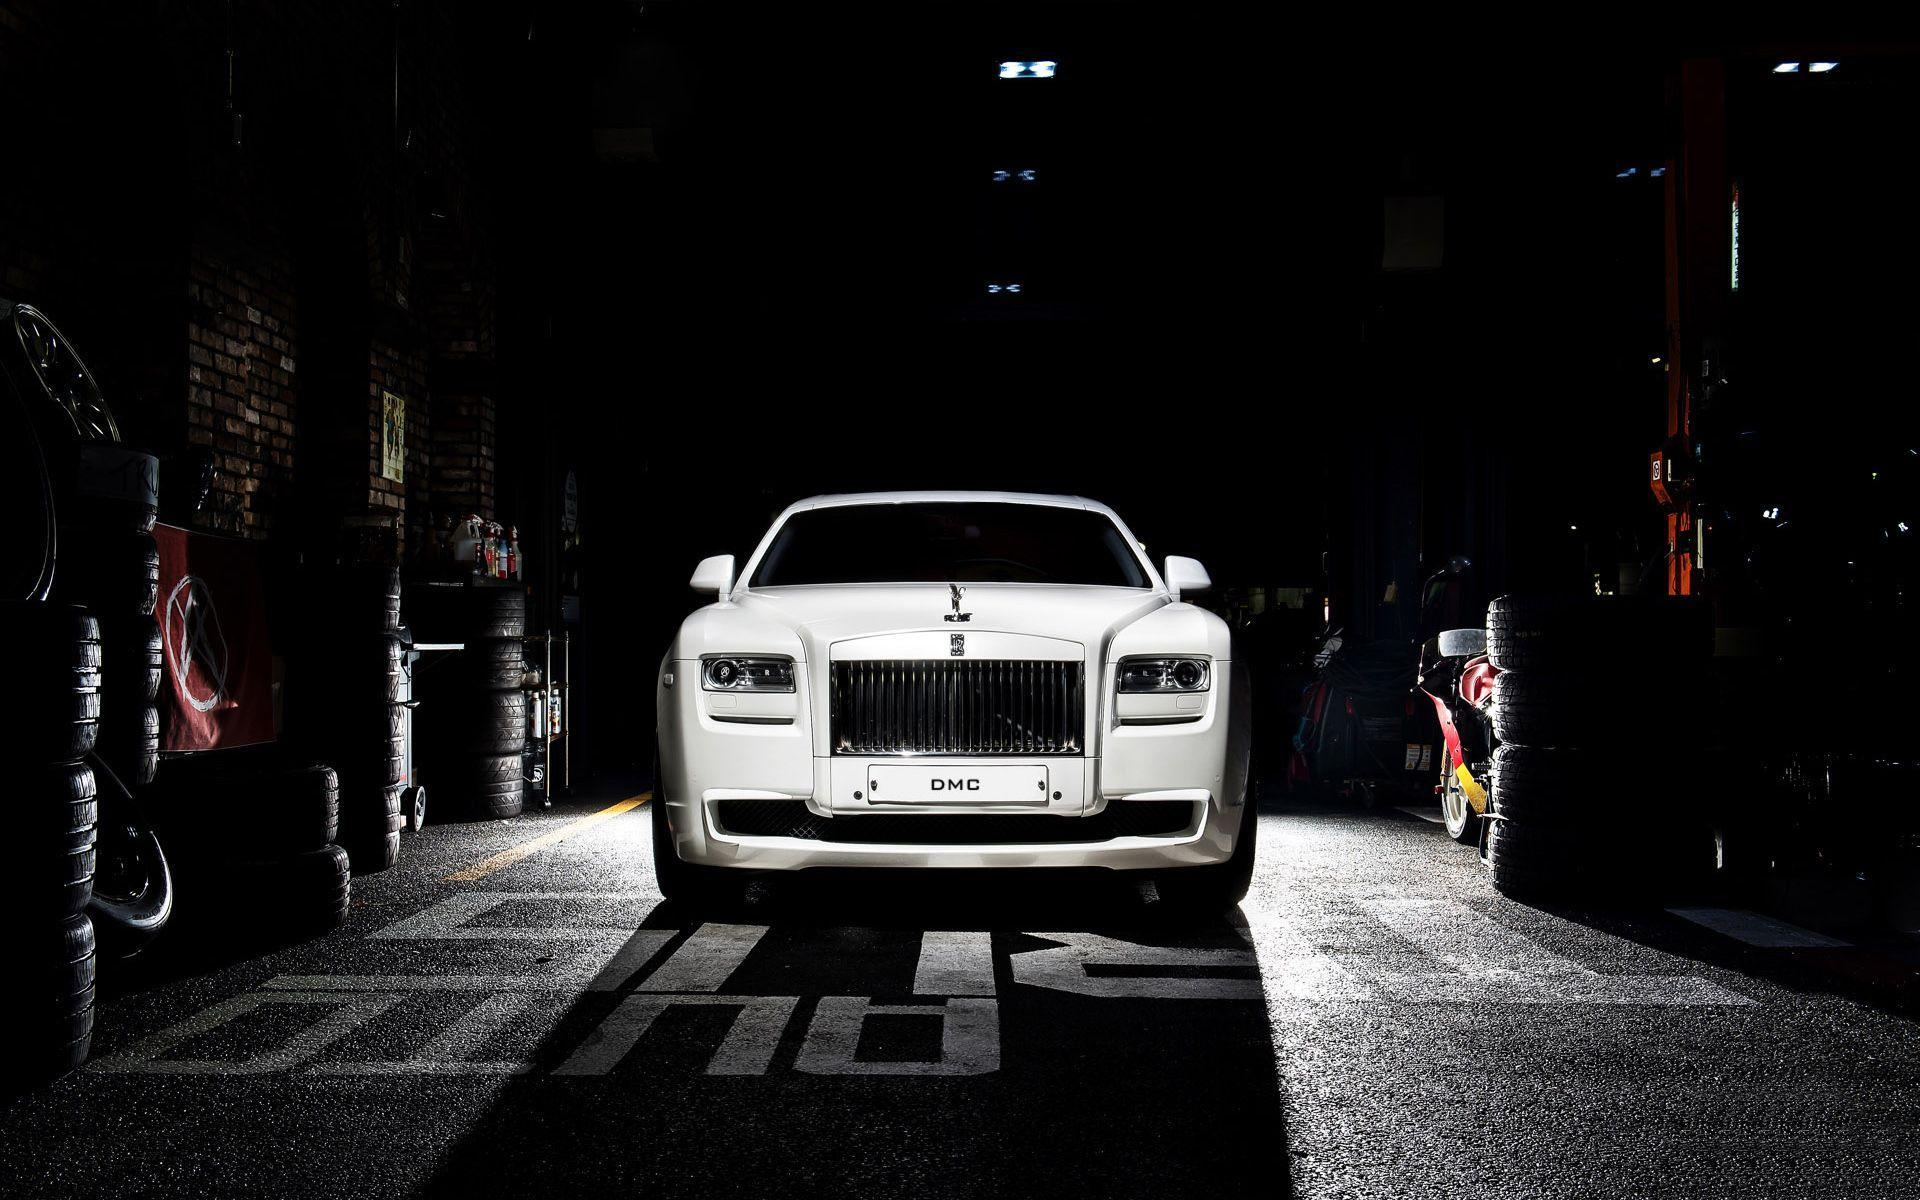 2016 DMC Rolls Royce Ghost SaRangHae Wallpapers